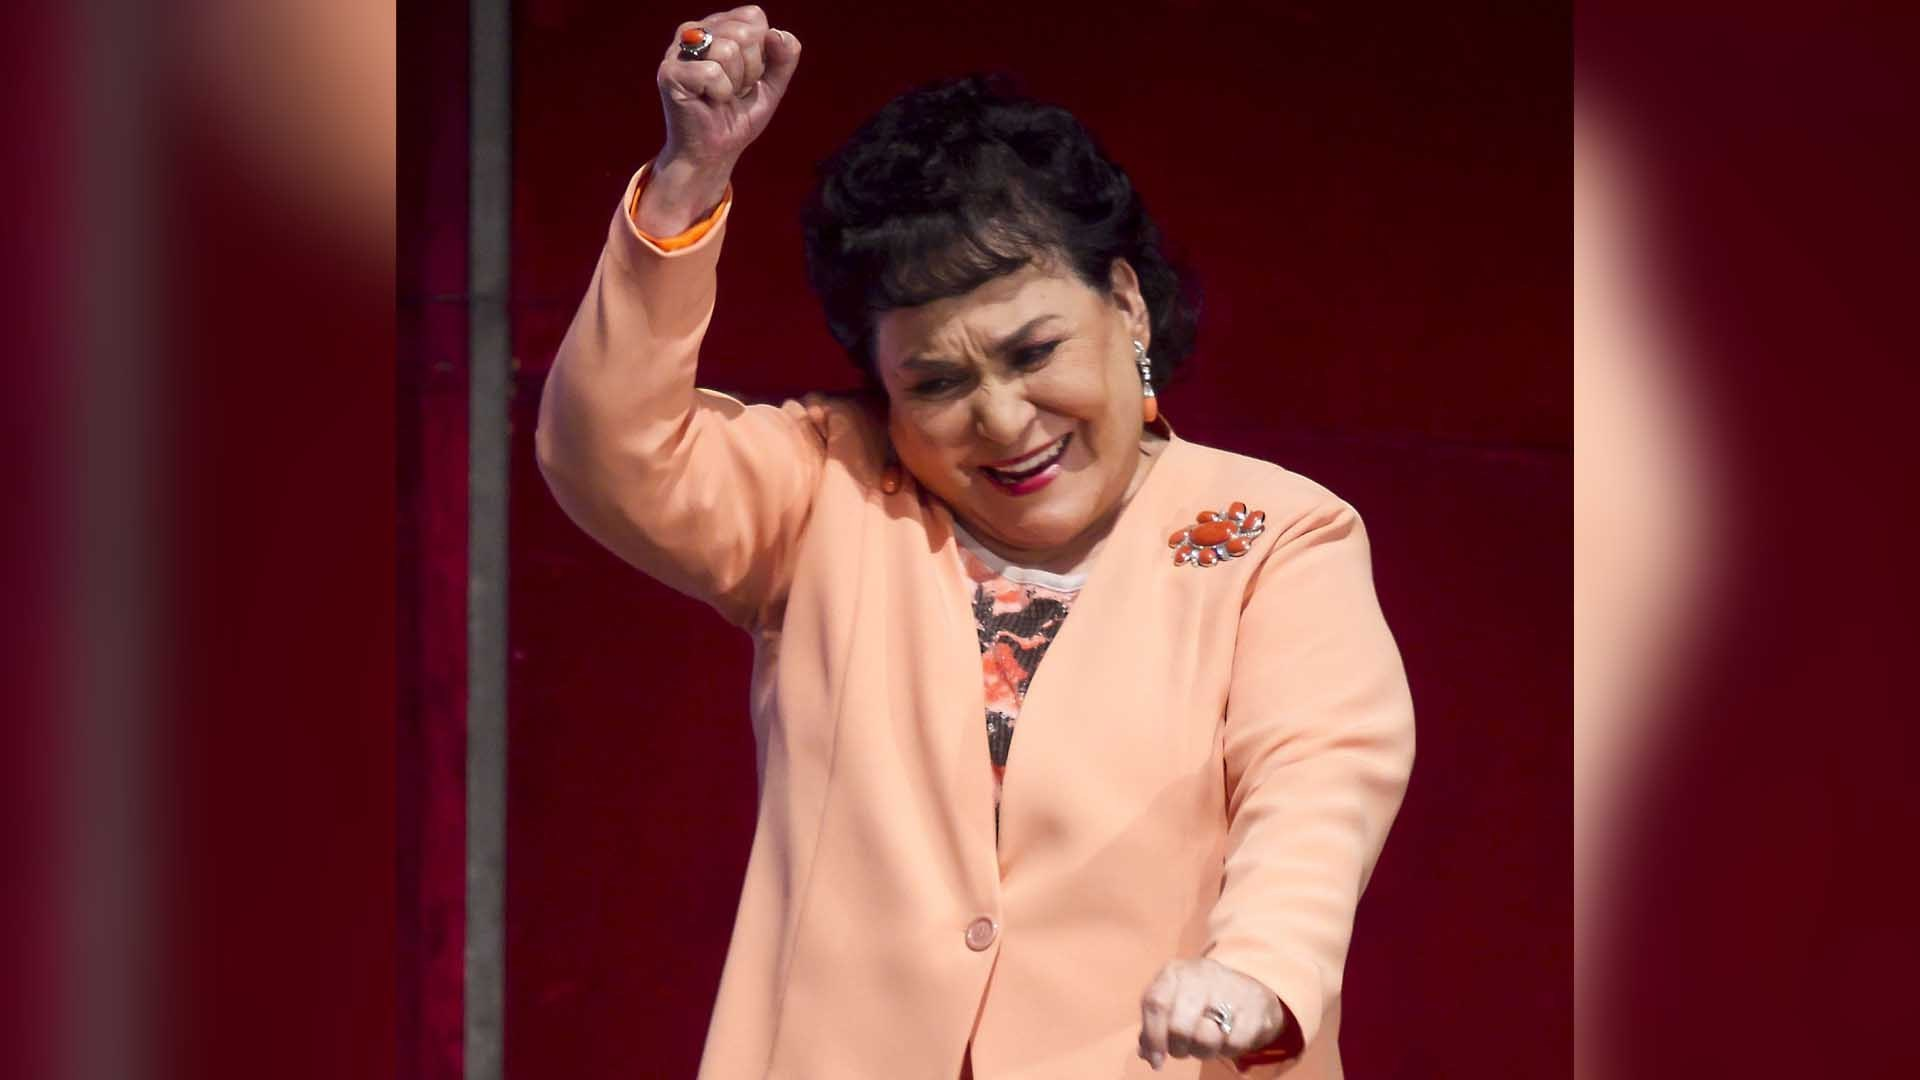 Carmen Salinas Known People Famous People News And